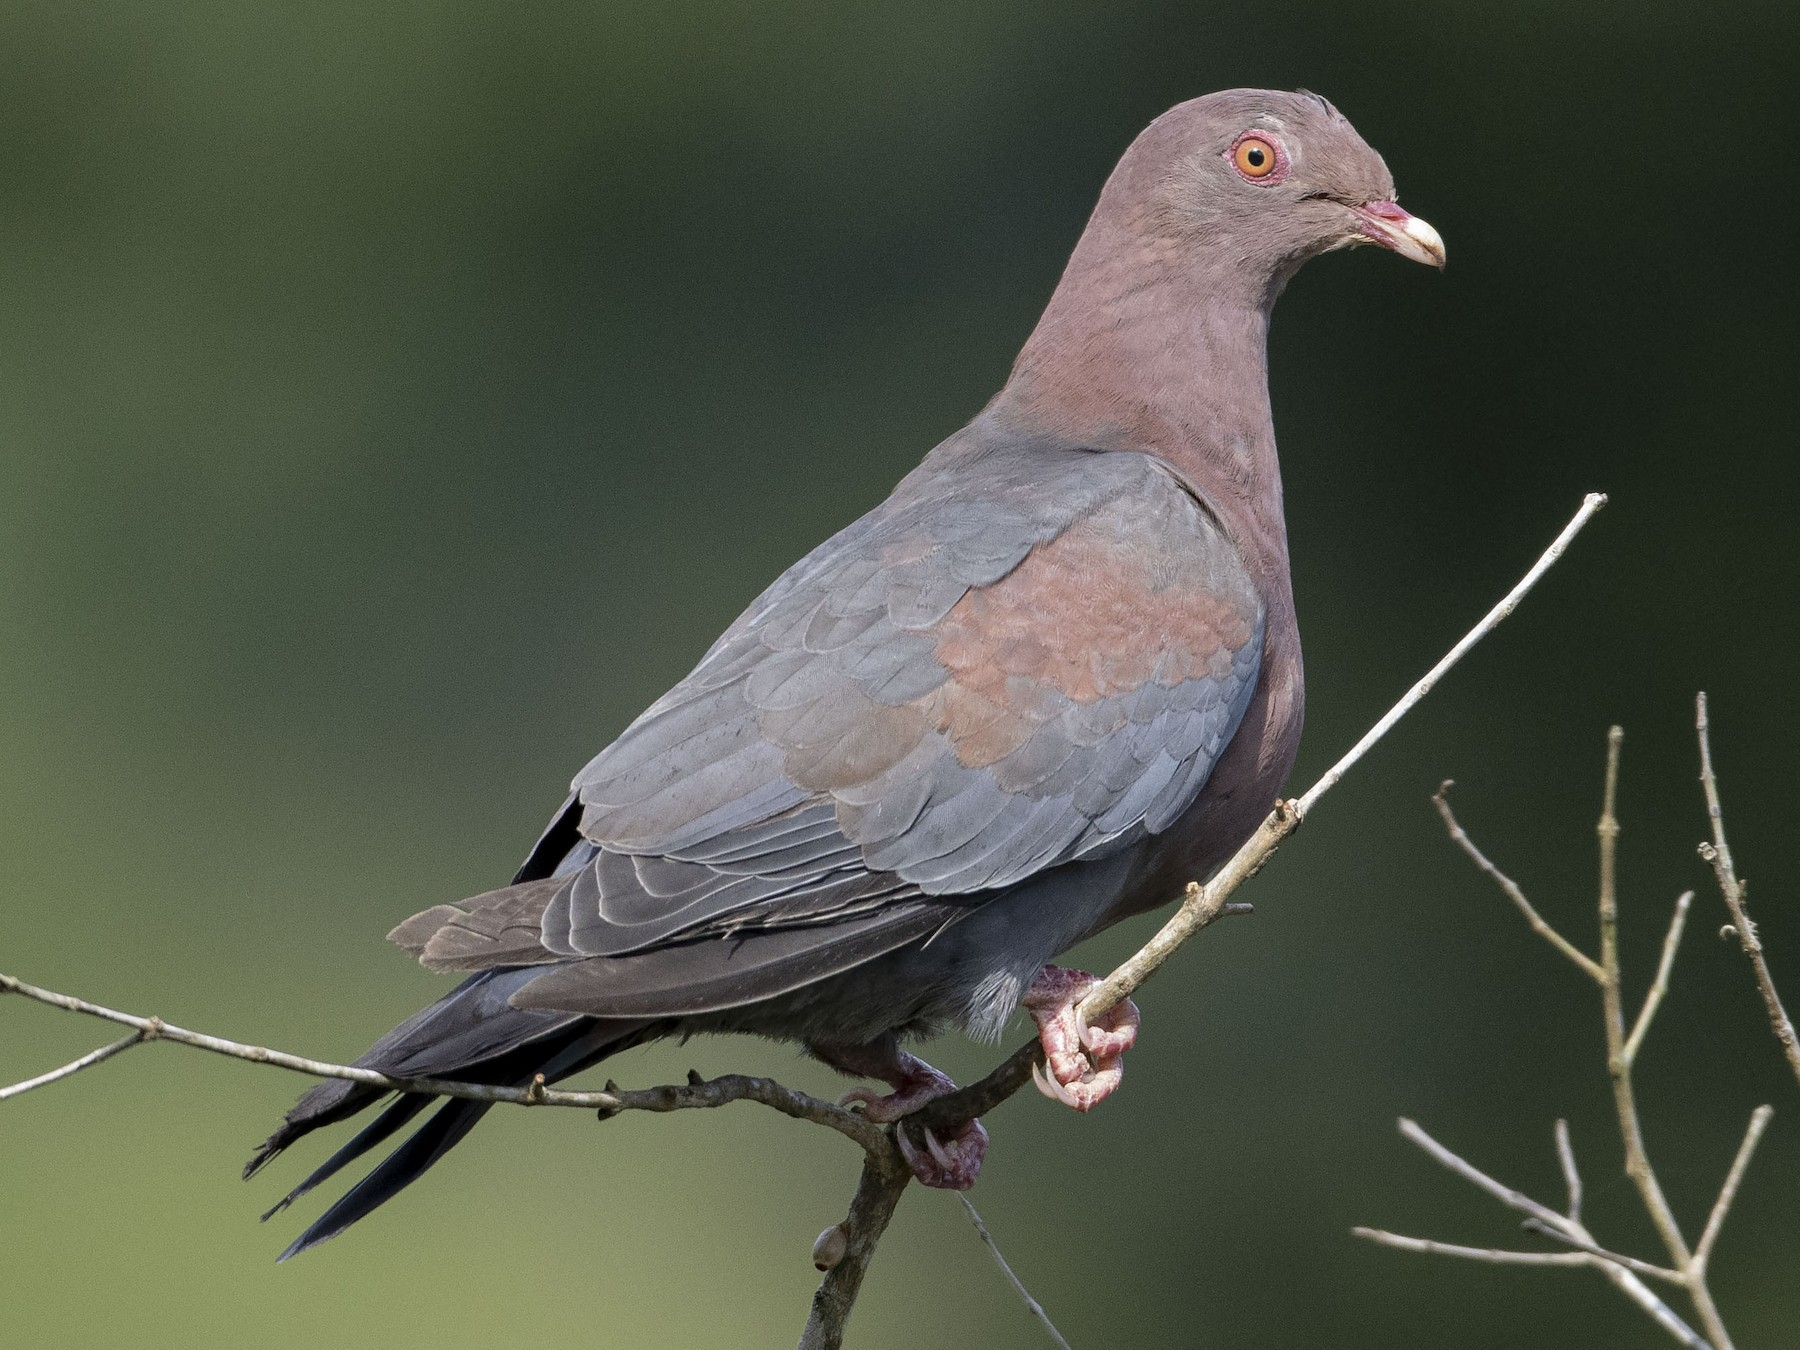 Red-billed Pigeon - Guillermo  Saborío Vega